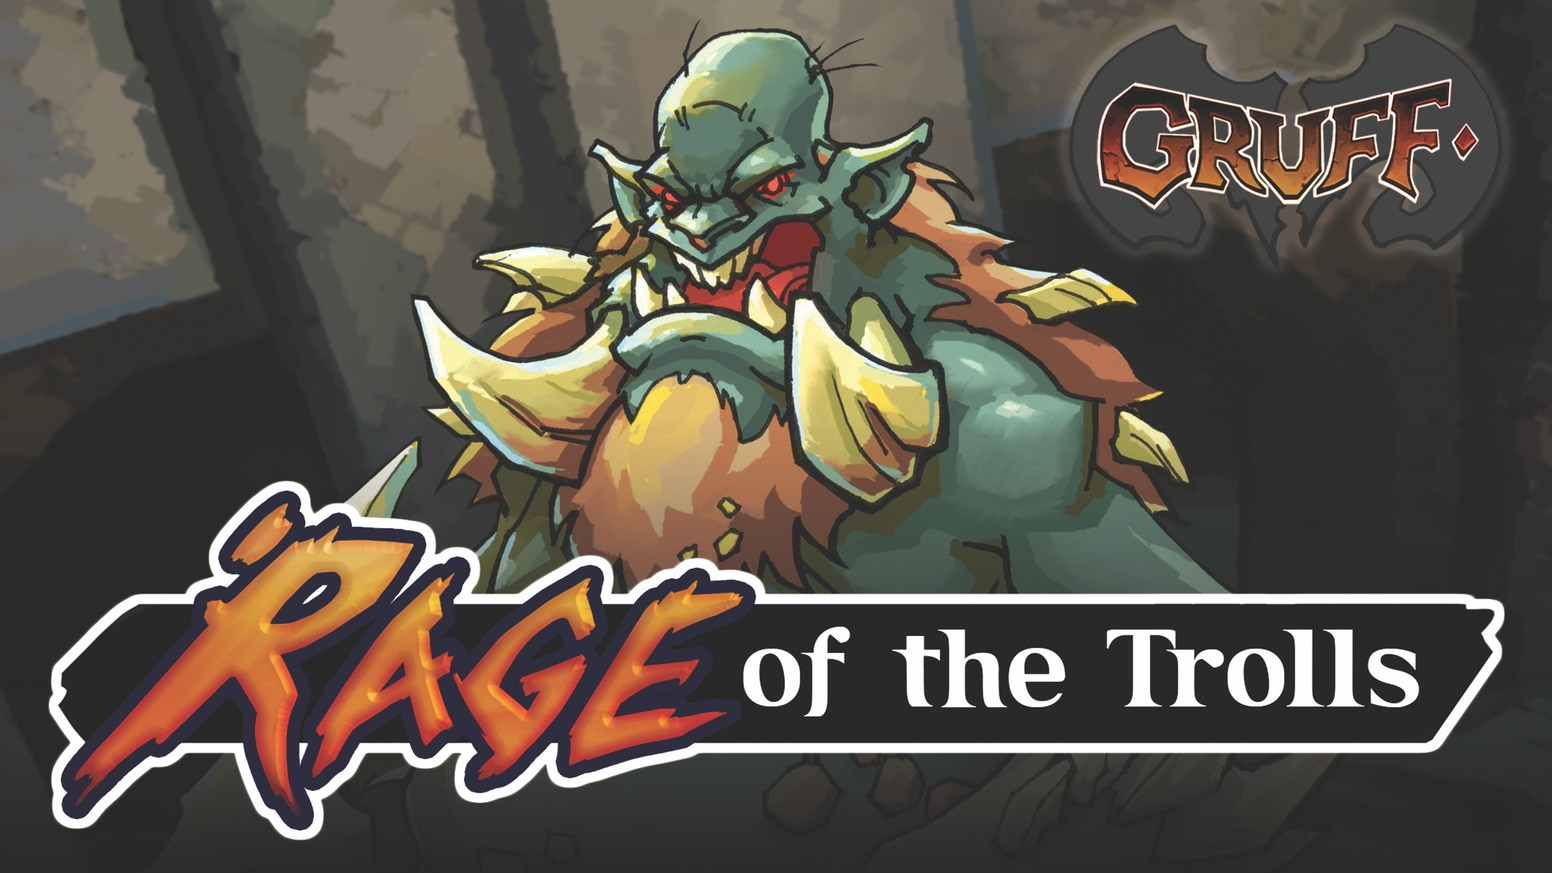 Rage of the Trolls is a tactical card game where players join forces using teams of monster goats to challenge troll boss-fights!